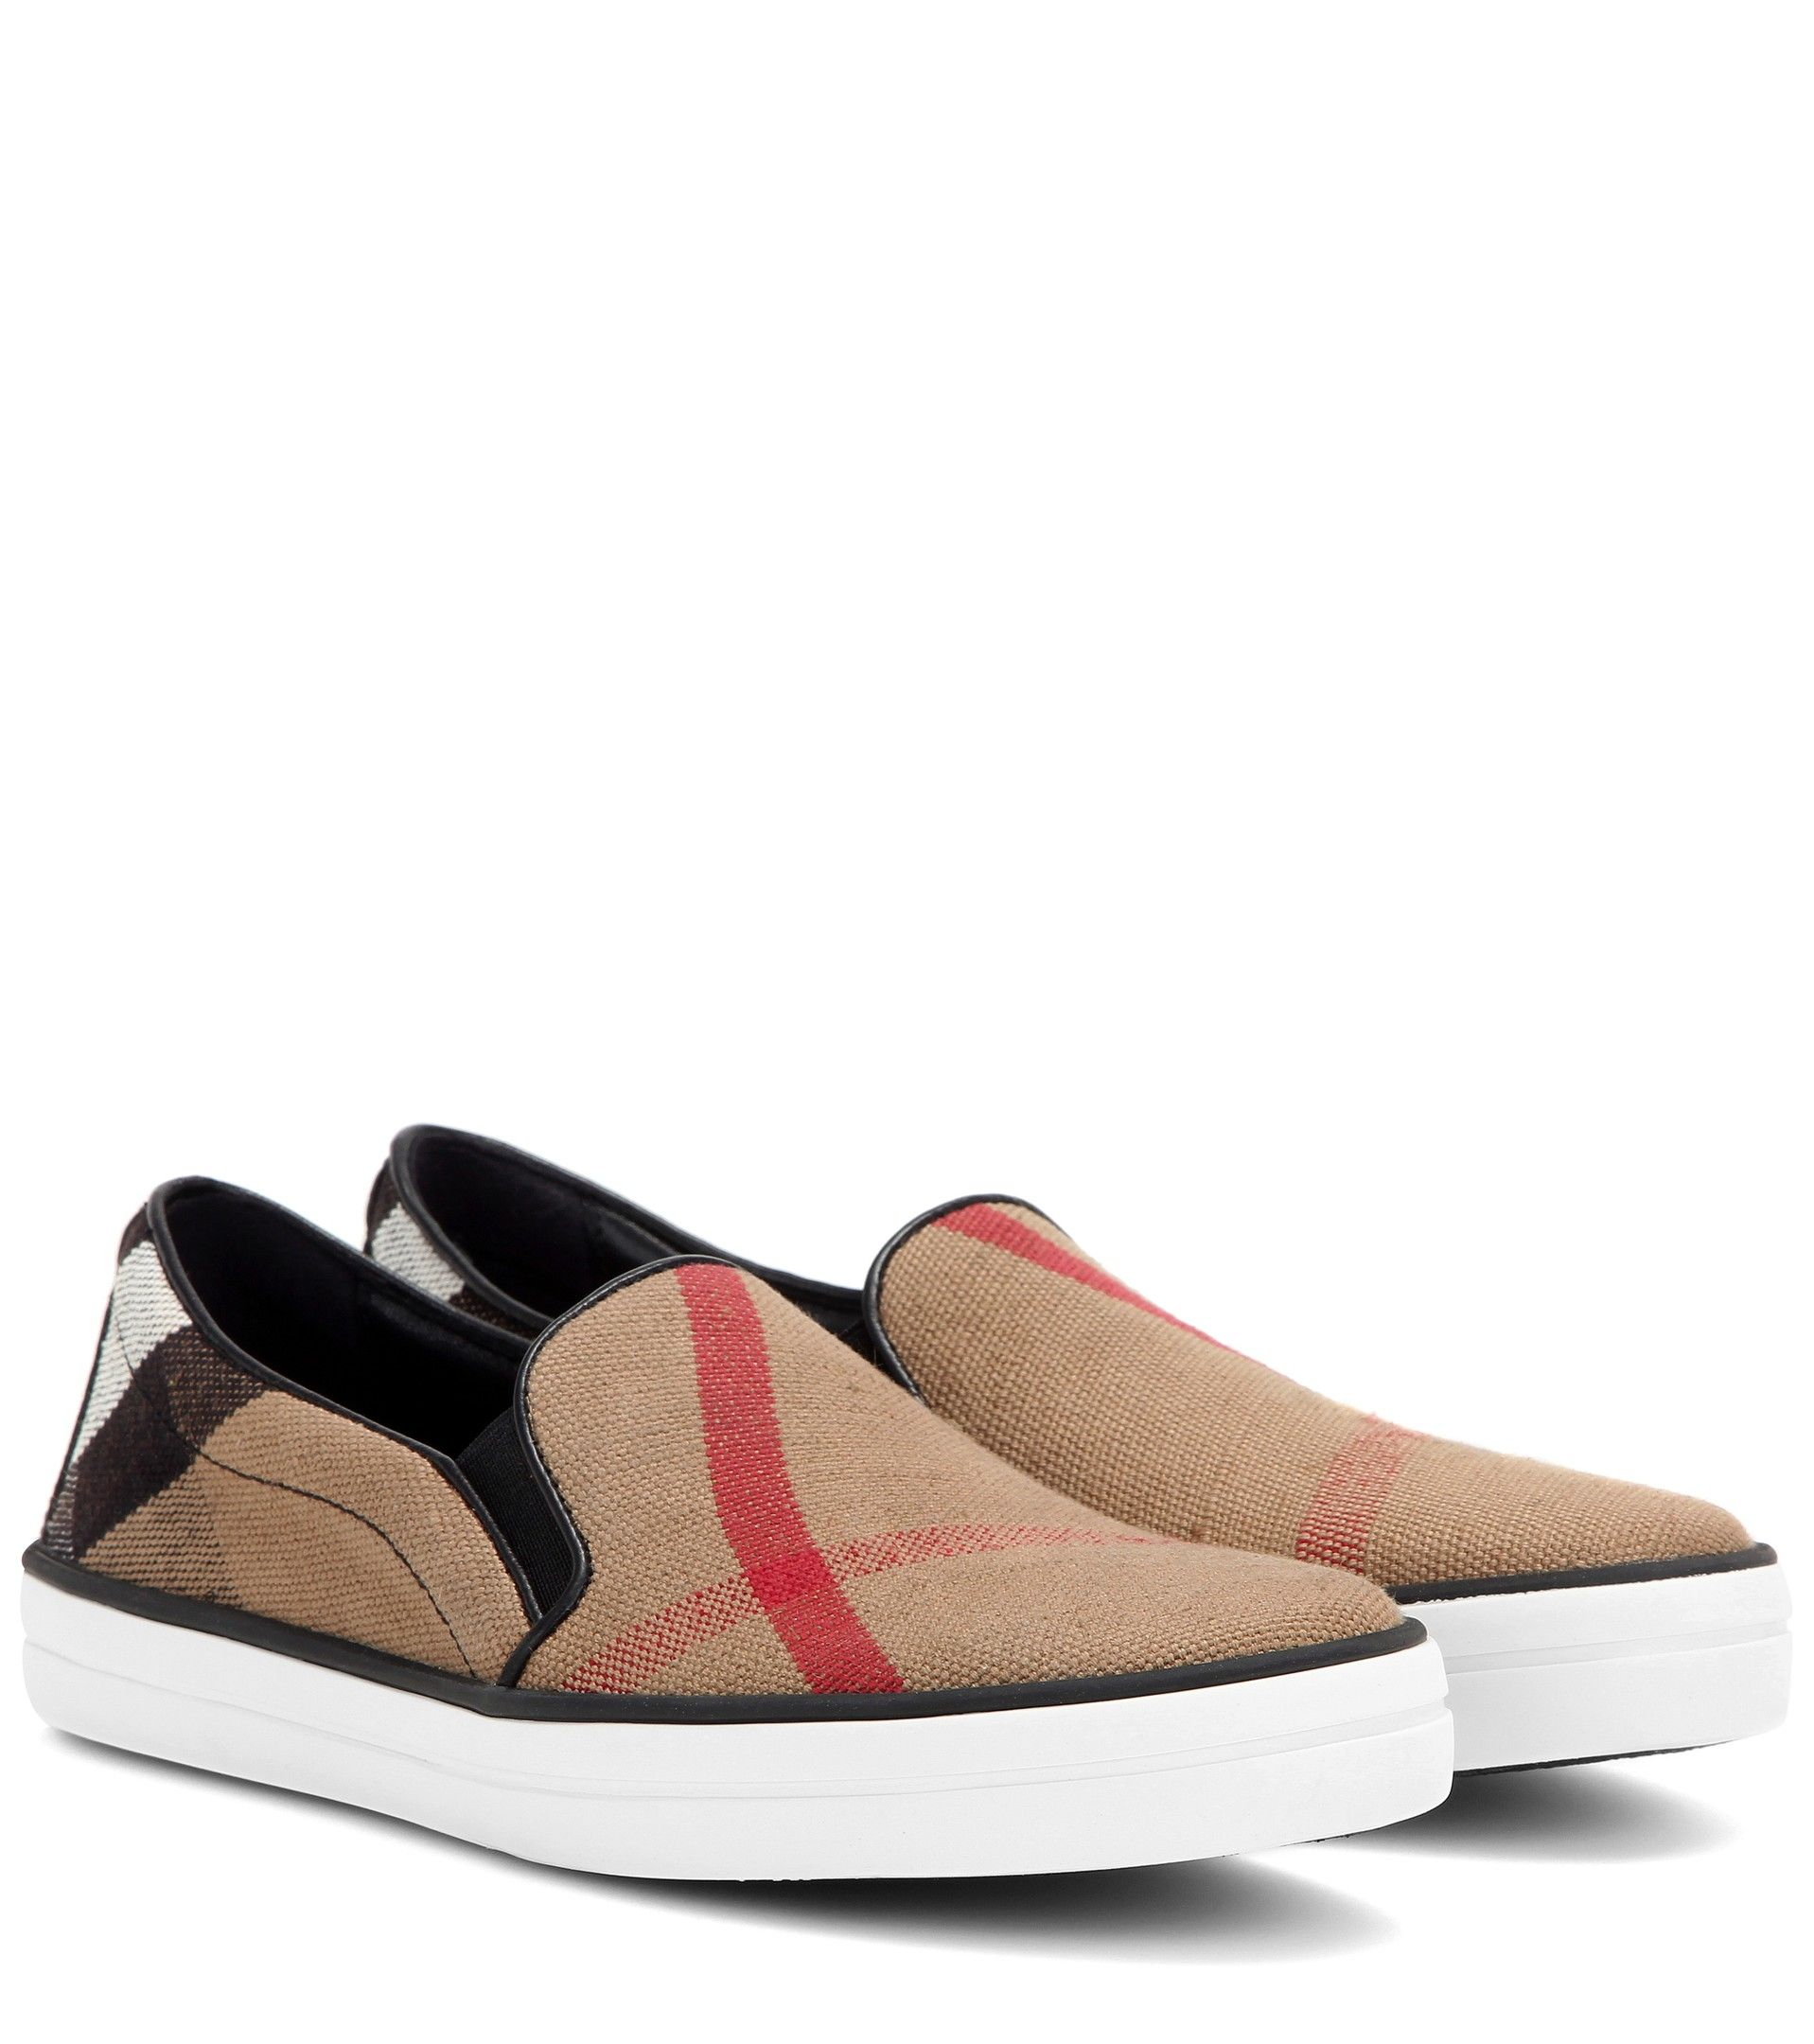 leather-trimmed slip-on sneakers